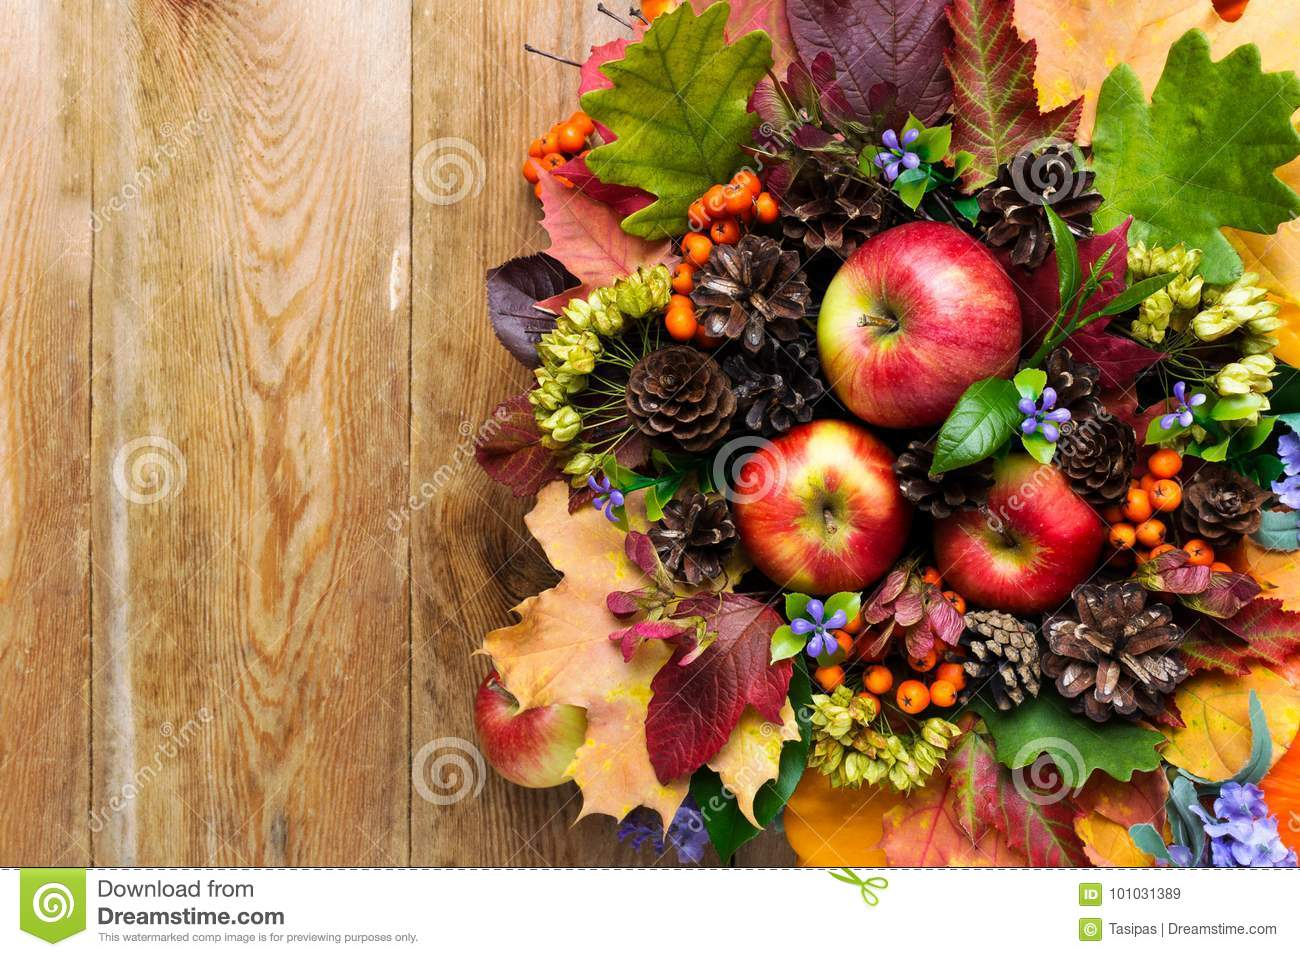 Fall Greeting With Apples Blue Flowers And Green Leaves Stock Image